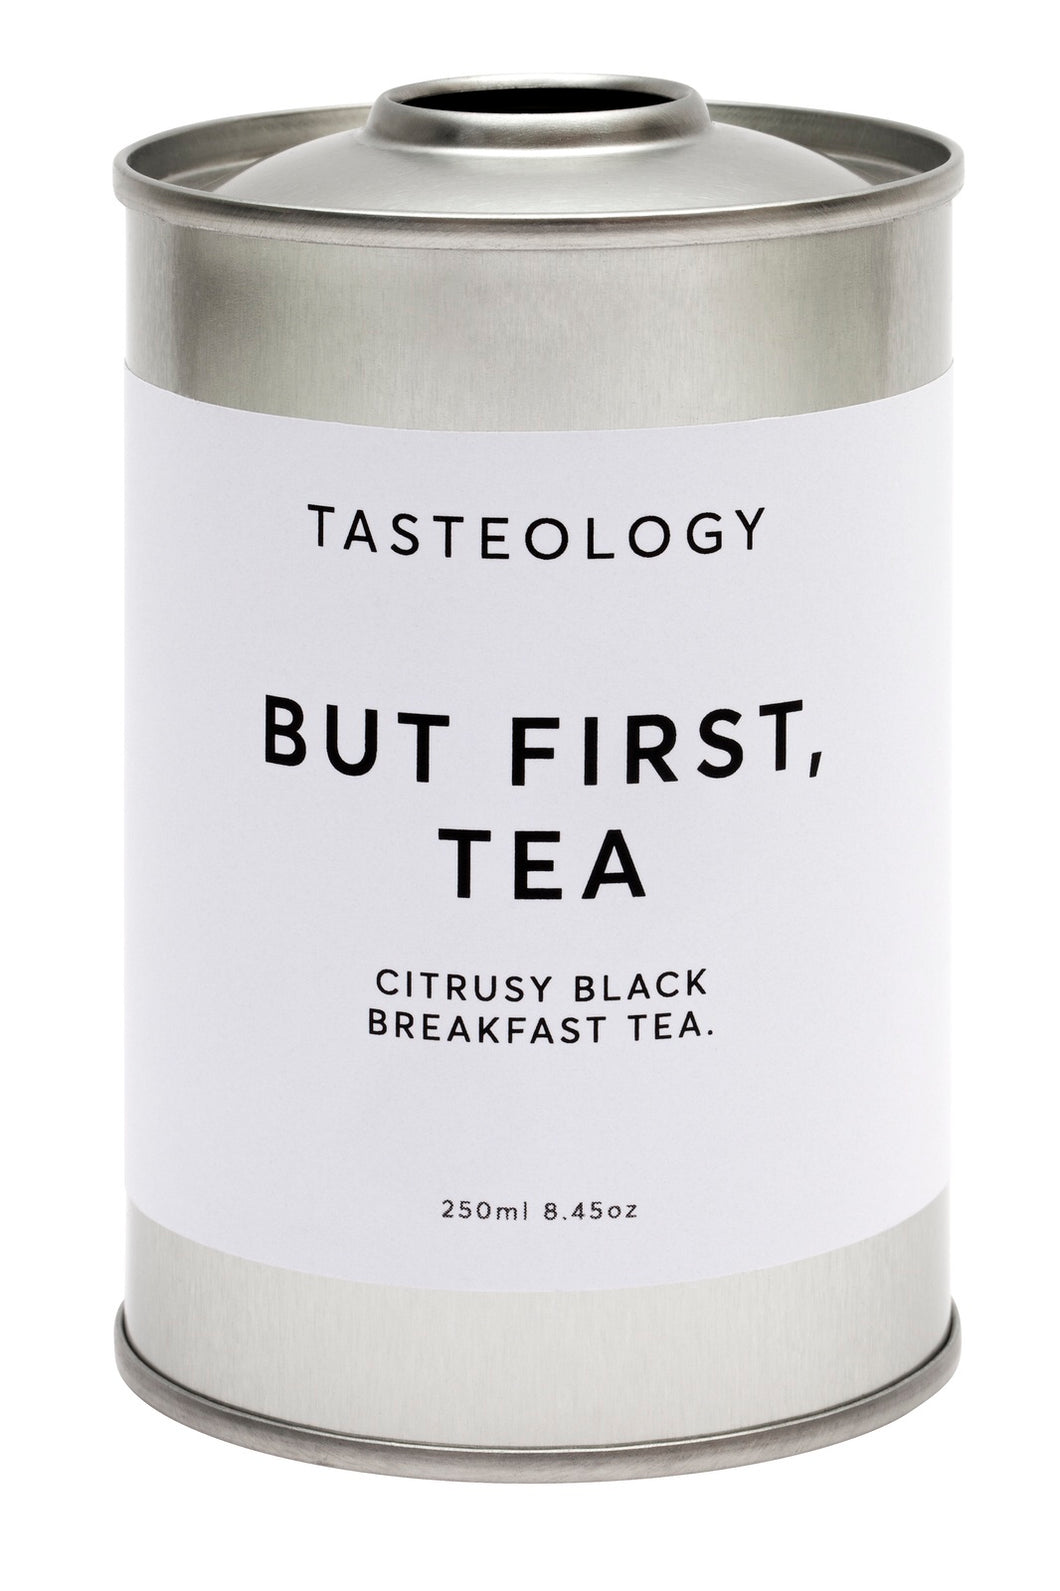 Tasteology - But first tea